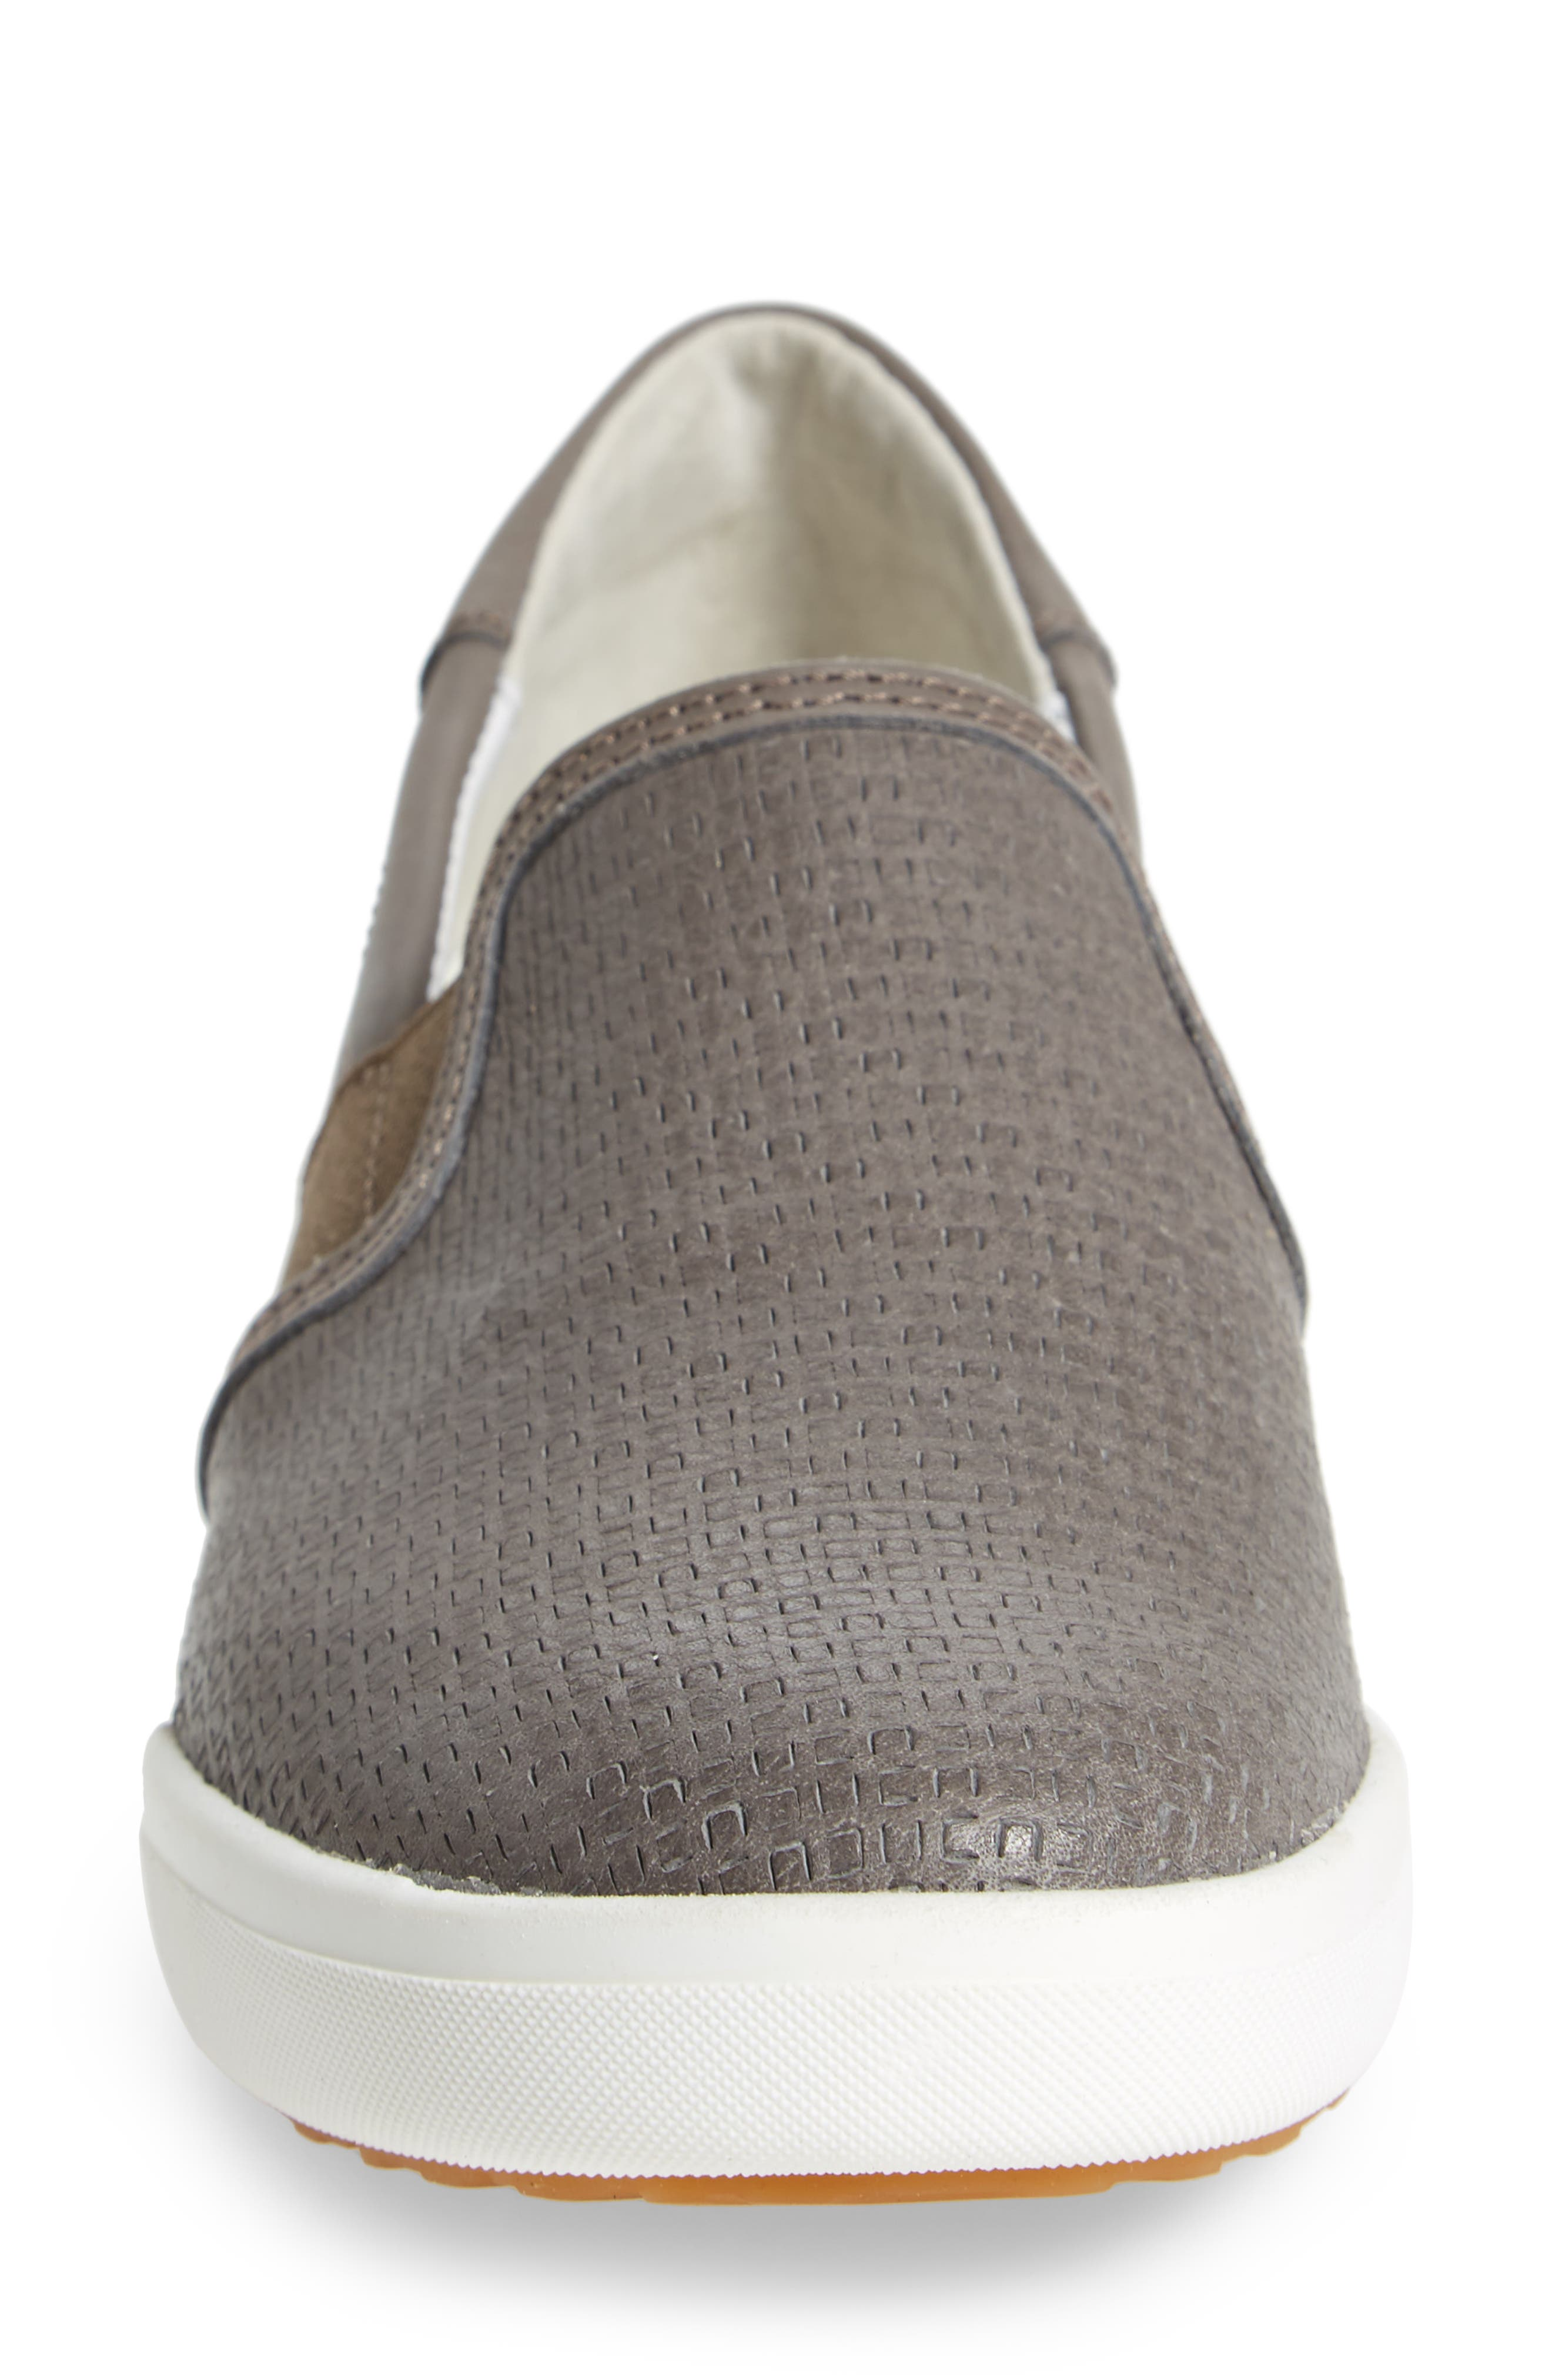 Sina 39 Sneaker,                             Alternate thumbnail 4, color,                             Grey Leather